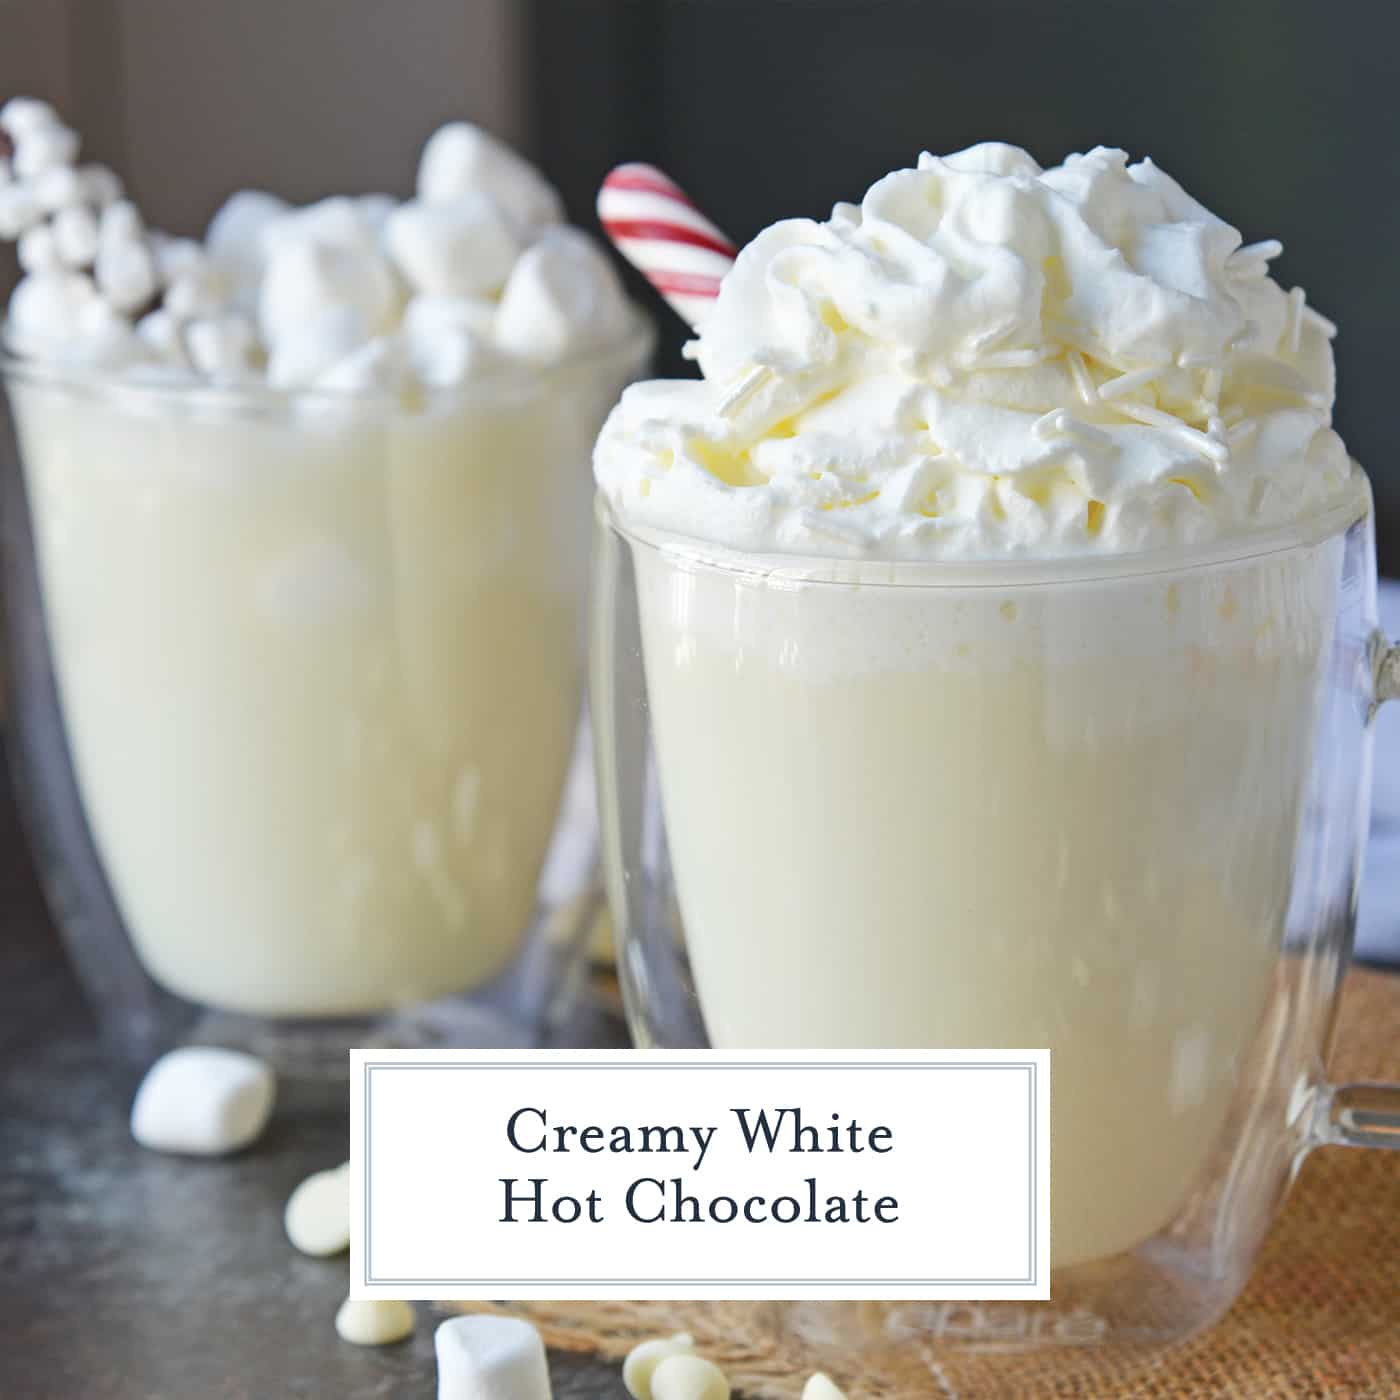 Homemade White Hot Chocolate is the perfect drink for warming up on cold days. White chocolate hot chocolate is delicious, quick and easy to make! #whitehotchocolaterecipe #whitehotcocoa www.savoryexperiments.com